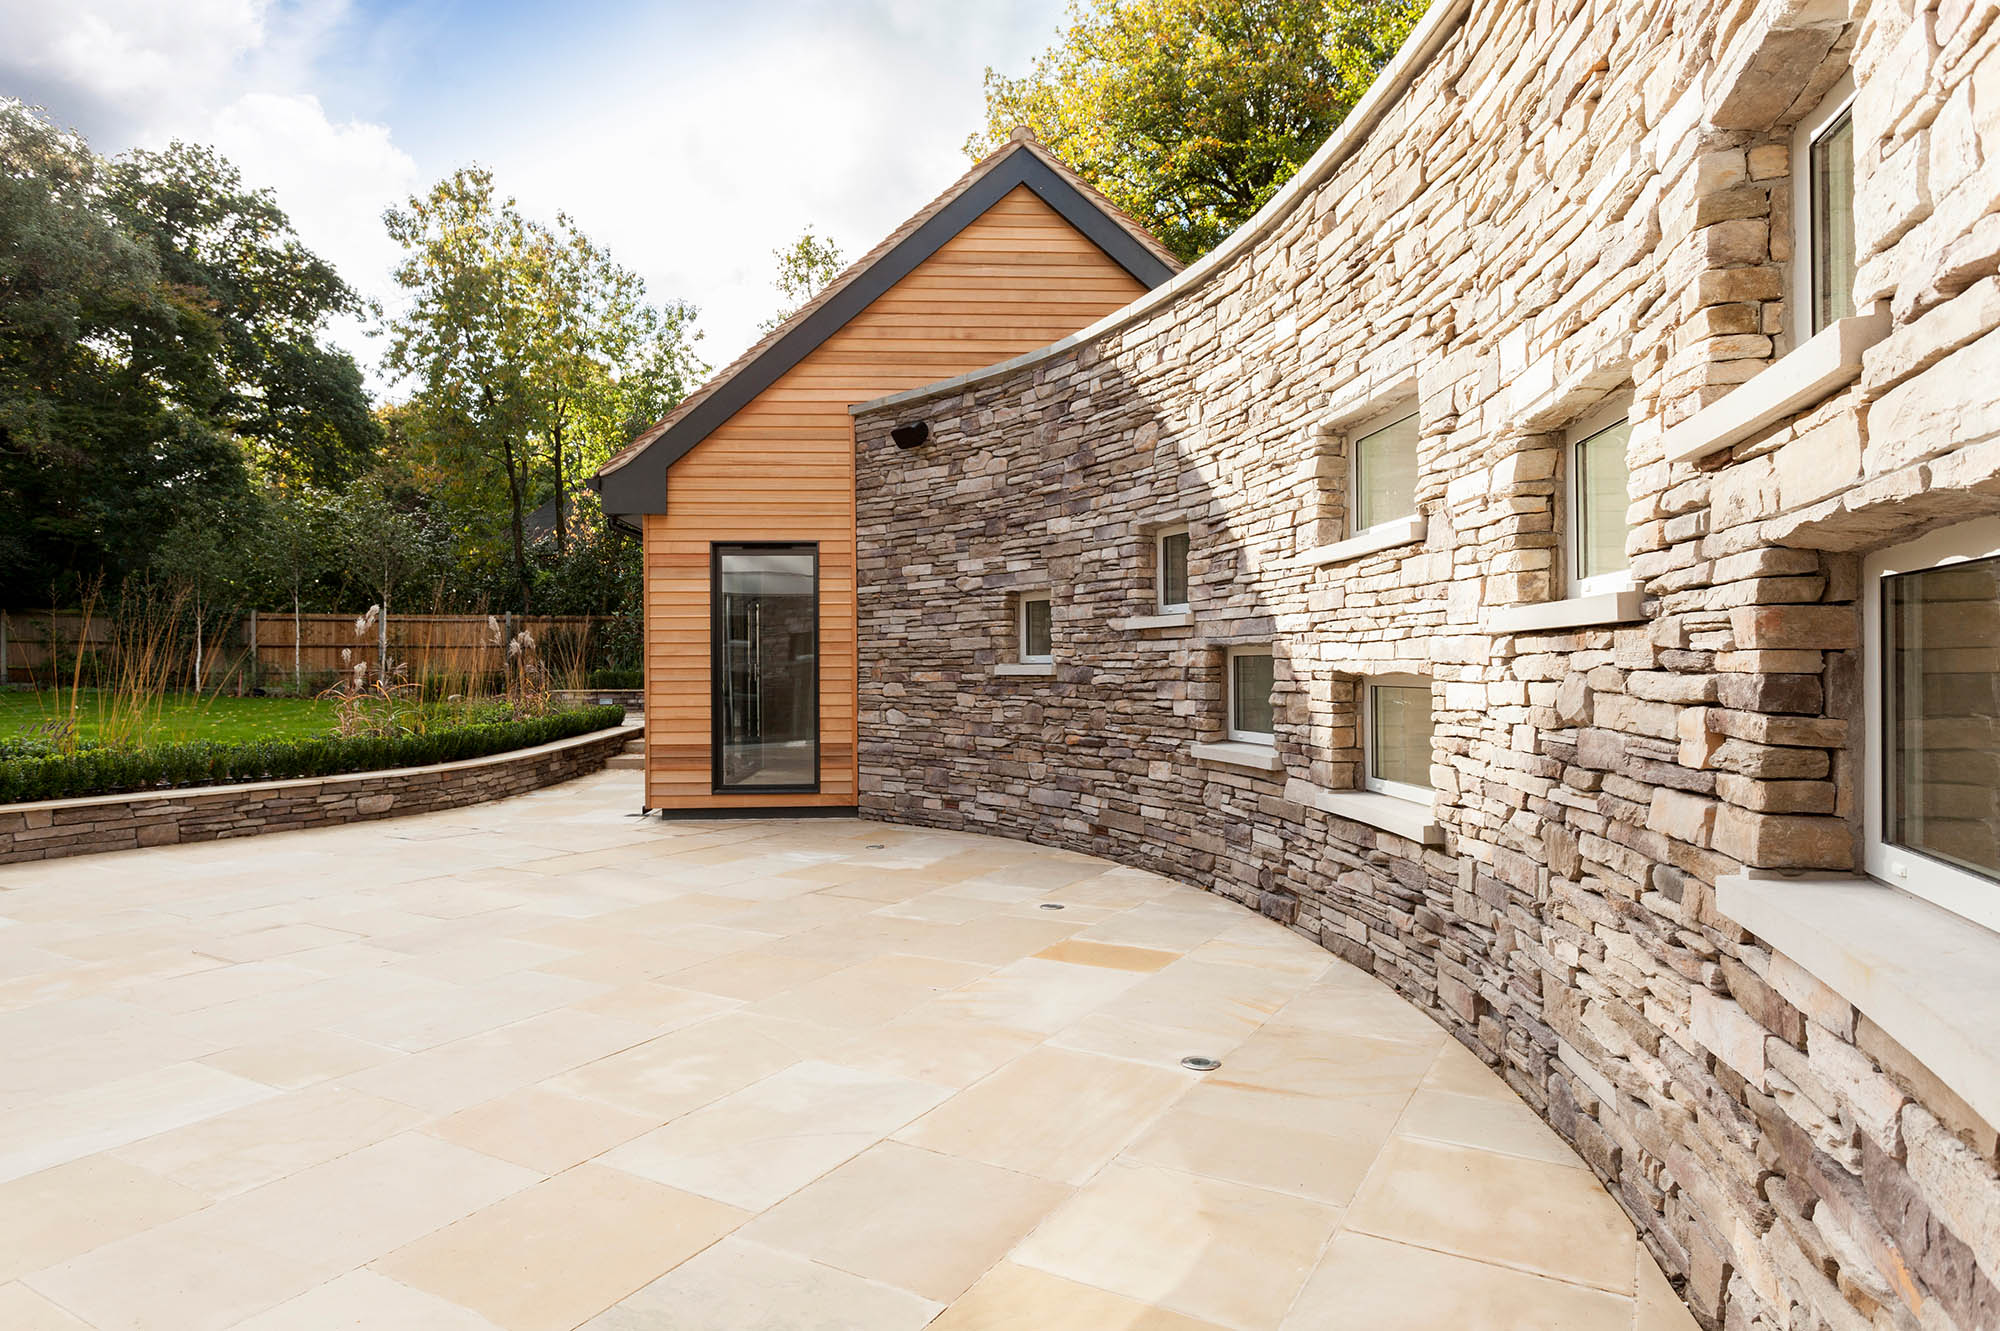 Curved wall extension section linking Pool House to the main Kylemore House